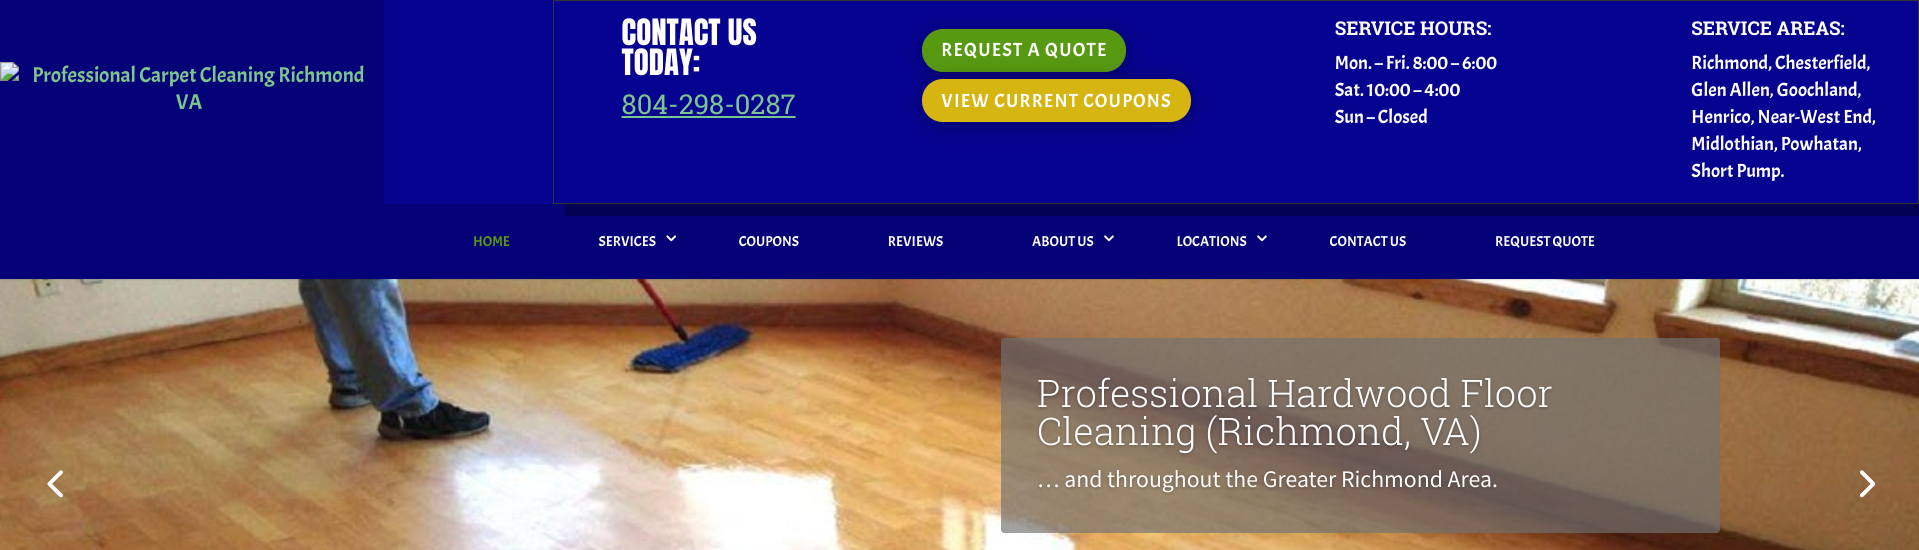 Carpet Cleaners Richmond Va In 2020 How To Clean Carpet Carpet Cleaners Carpet Repair